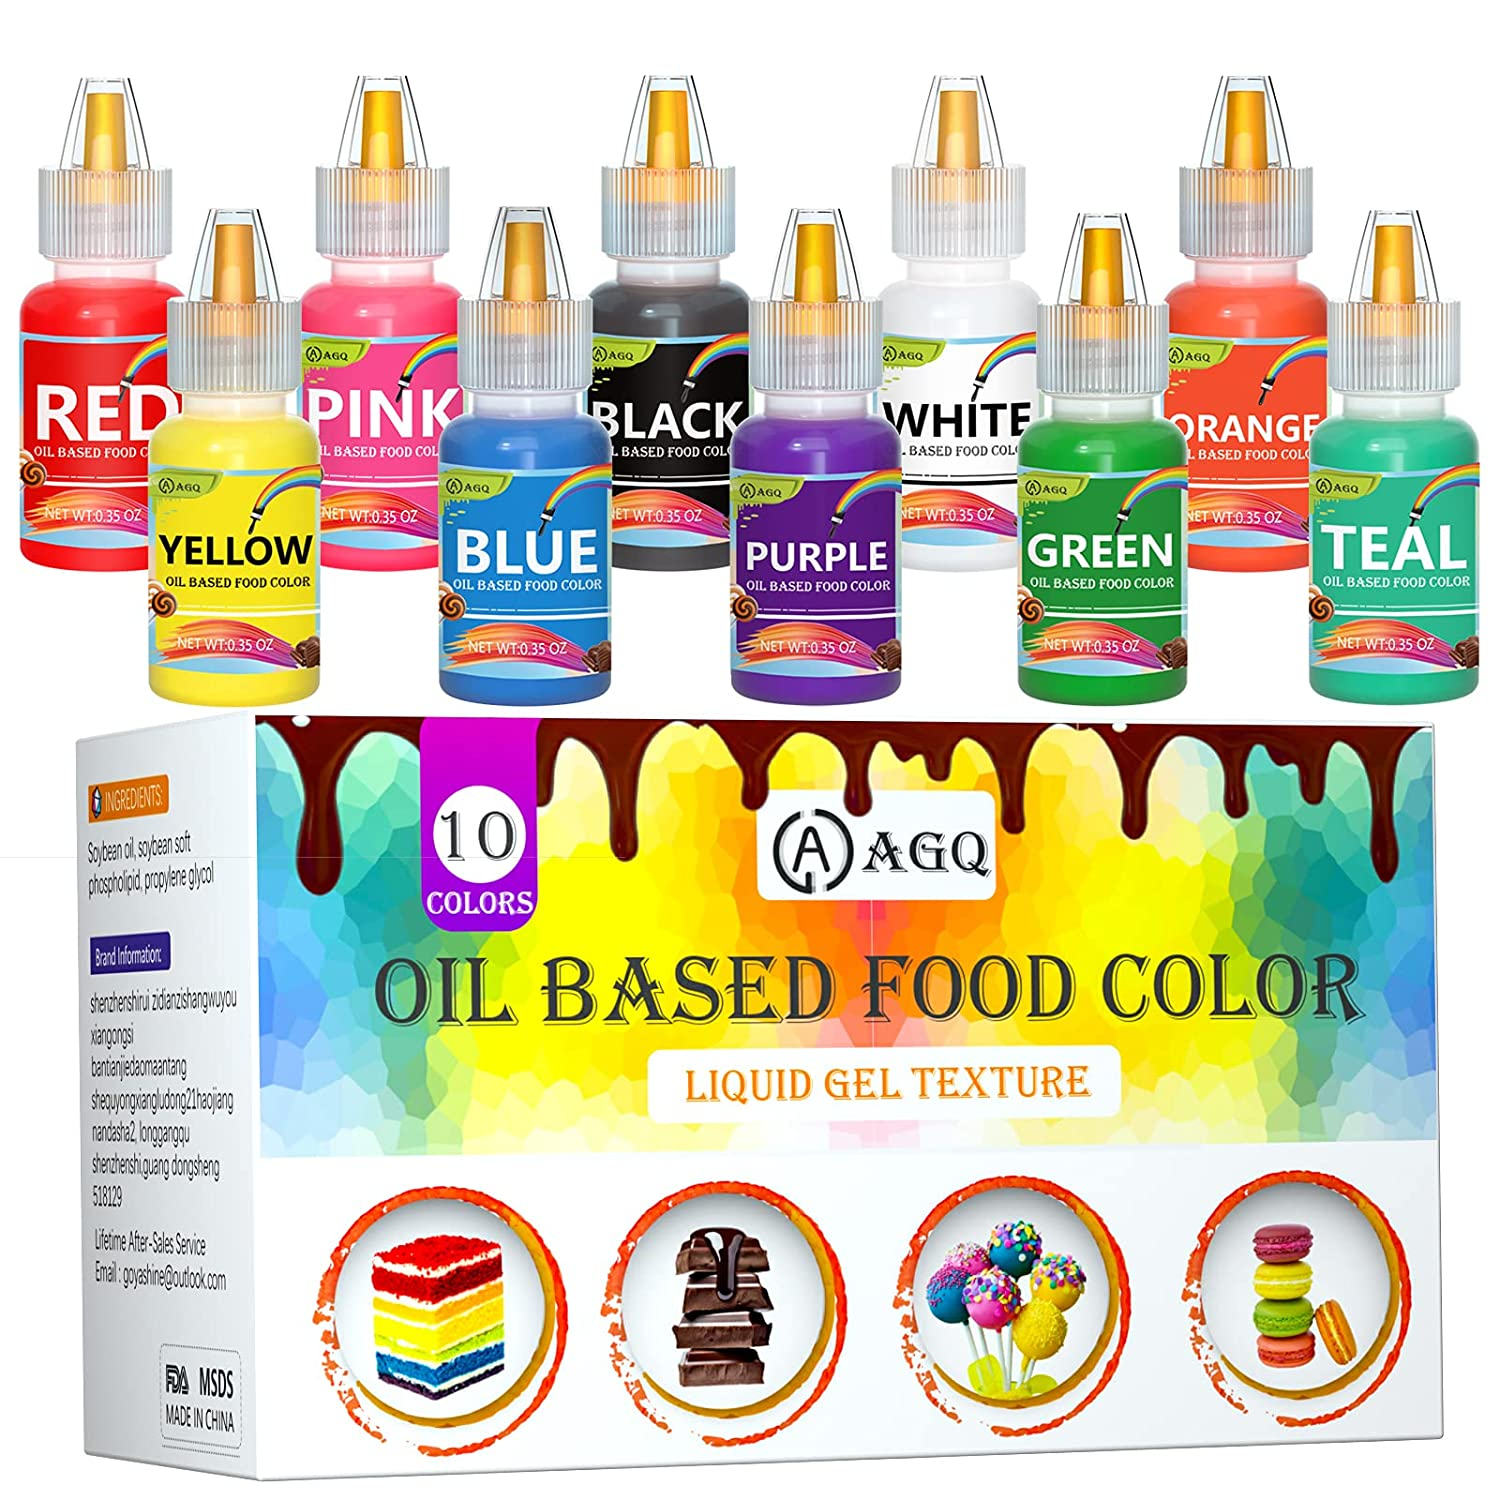 Oil Based Food Coloring for Chocolate - AGQ Oil Food Color Set for Sugar Candy Melts, 10 Colors Edible Food Dye Paint Kit for Baking Icing Cookies Cake Decorating Fondant Cupcake (.35 Fl. Oz Bottles)